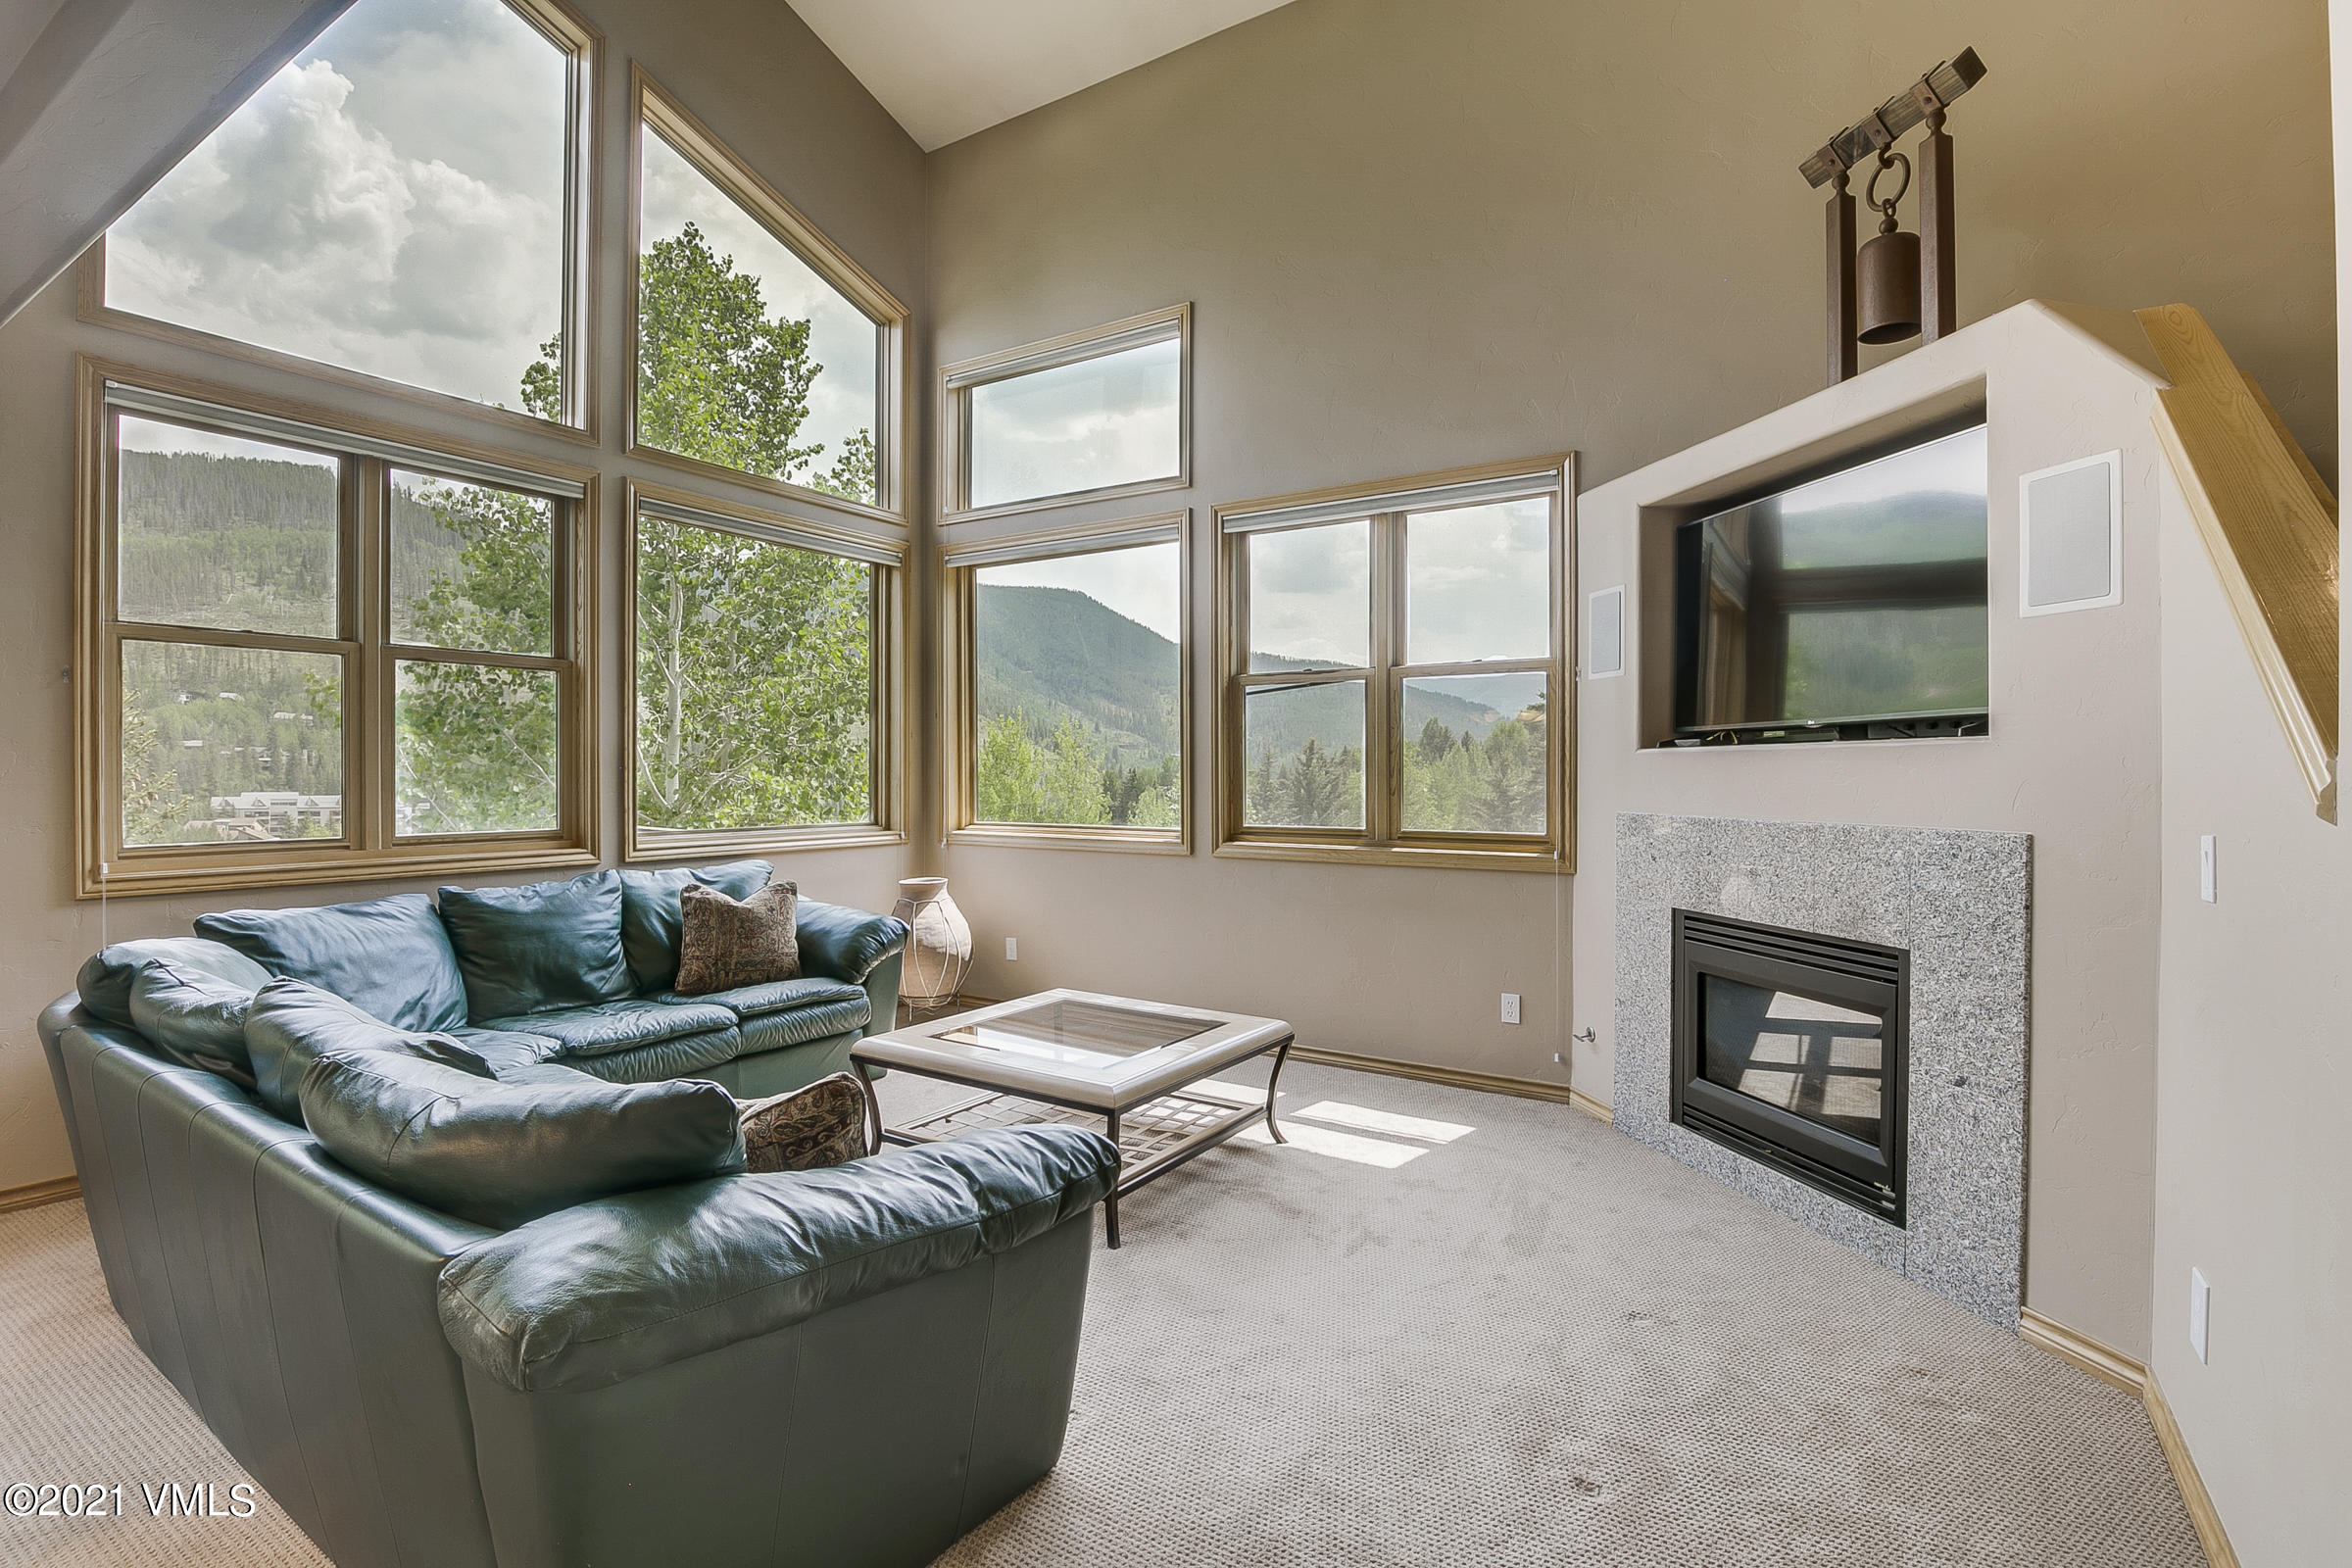 This is the perfect location in Vail - the sunny side- where the sun doesn't disappear behind the mountains!!! If you love light, bright, and sunshine this is your home!!! Enjoy the expansive views from the Gore Range to the runs of Beaver Creek, from the outside deck, dining room and living room!!! A wonderful sense of calm, relaxation, and beauty! This ideally located home is on a quiet cul-de-sac which borders the National Forest and is steps away from the North Trail, where you can walk your dog, hike, mountain bike, and snowshoe! The levels in this Wonderful Garmisch drive home is perfect for privacy for you and your children or your guests!!!! Everyone has their own space, which makes this home feel even bigger and more like a mountain retreat!! Natural light drenches all 3 levels of this cheery, very comfortable, and extremely well taken care of home!Radiant heat is on all 3 levels!The two car garageprovides plenty of room for all of your mountain toys! Vail skiing is just a few minutes away as well as grocery, dining and shopping.Once you visit 2338 B Garmisch you will immediately feel that you are Home!!